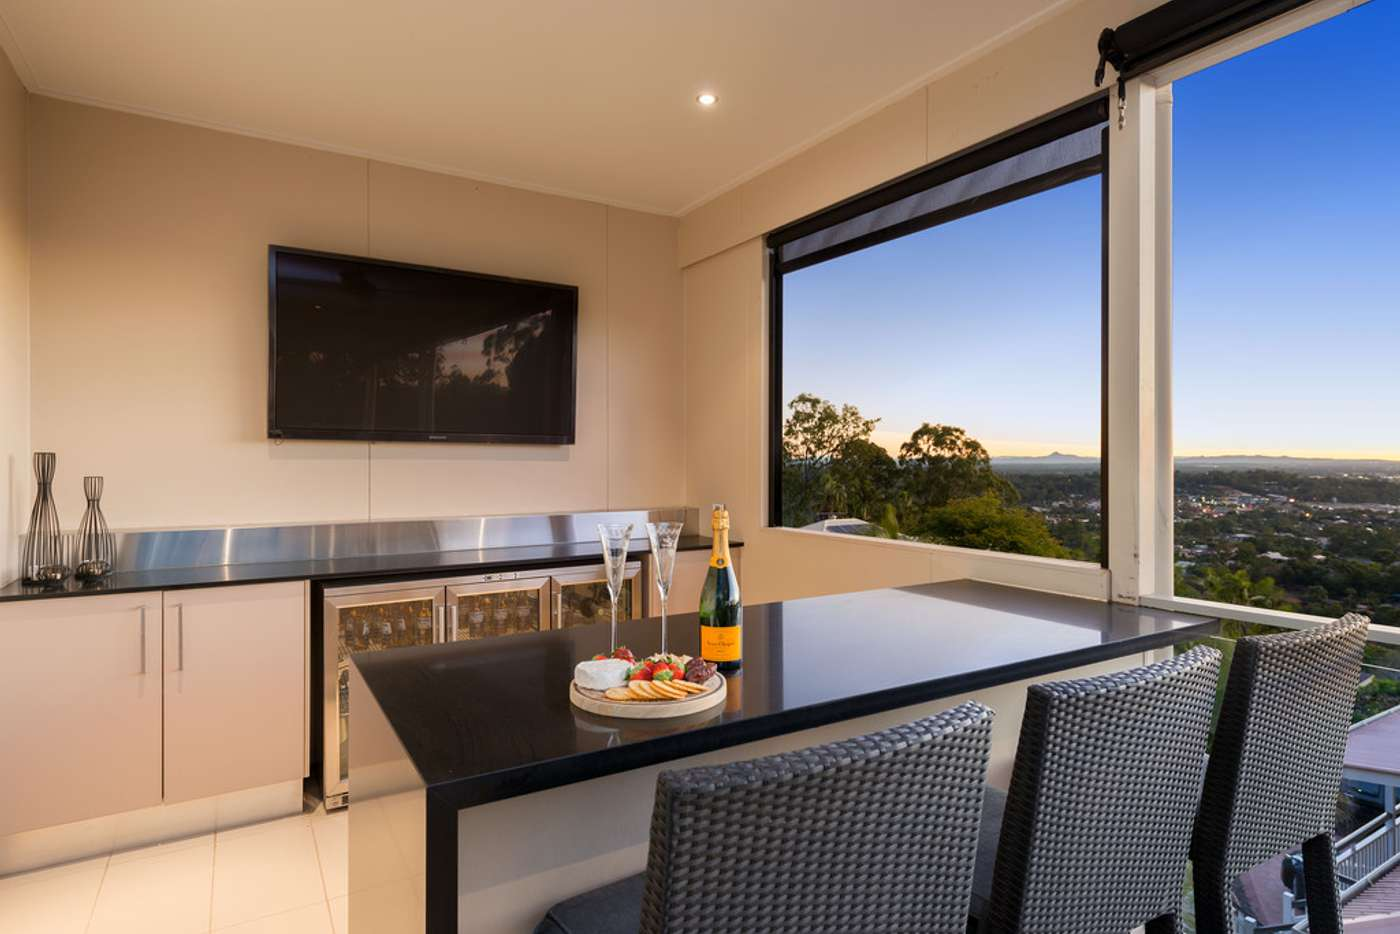 Fifth view of Homely house listing, 6 Torrelliana Court, Cornubia QLD 4130